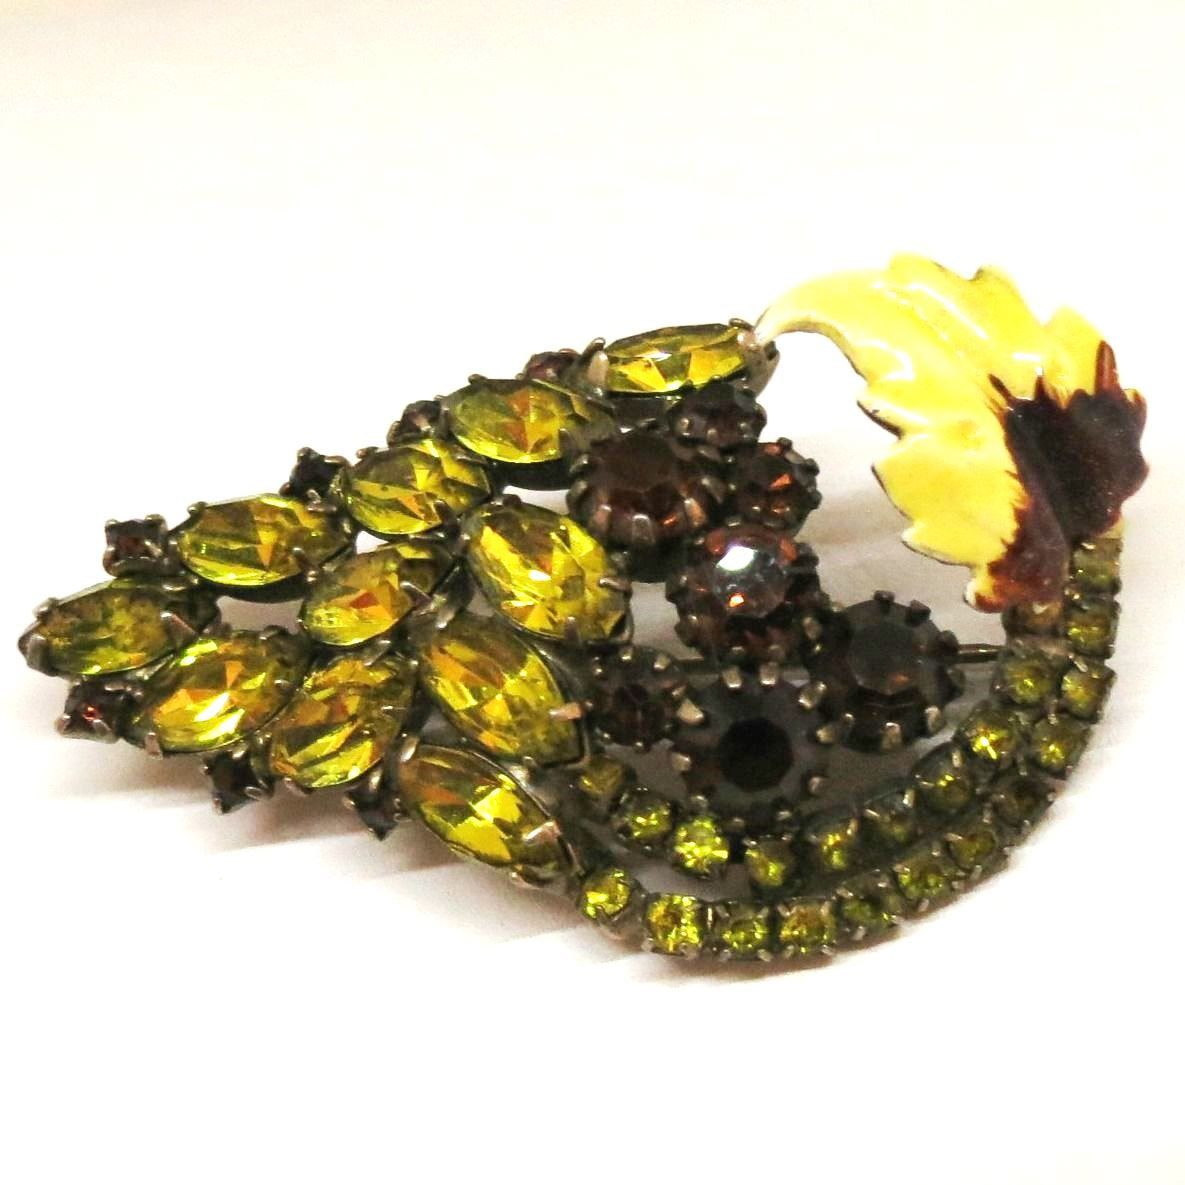 Yellow Rhinestone and Enamel Brooch - Juliana Style, Vintage, Gold Tone, Floral Pin by MyDellaWear on Etsy https://www.etsy.com/listing/218480765/yellow-rhinestone-and-enamel-brooch